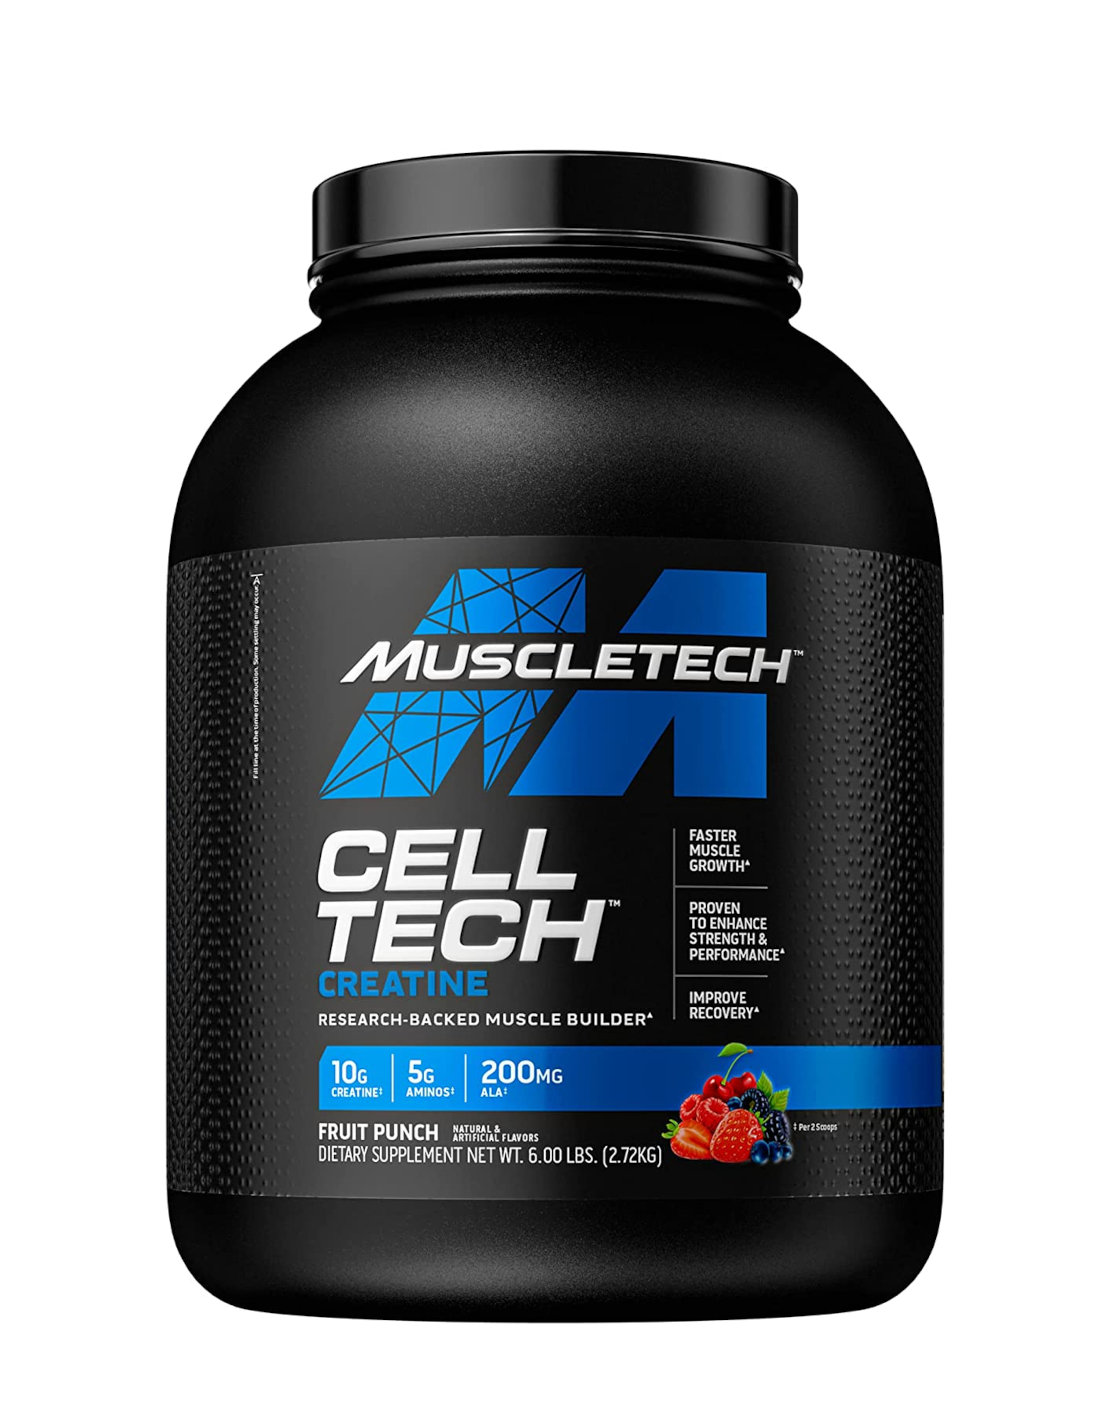 cell tech hardgainer creatine review